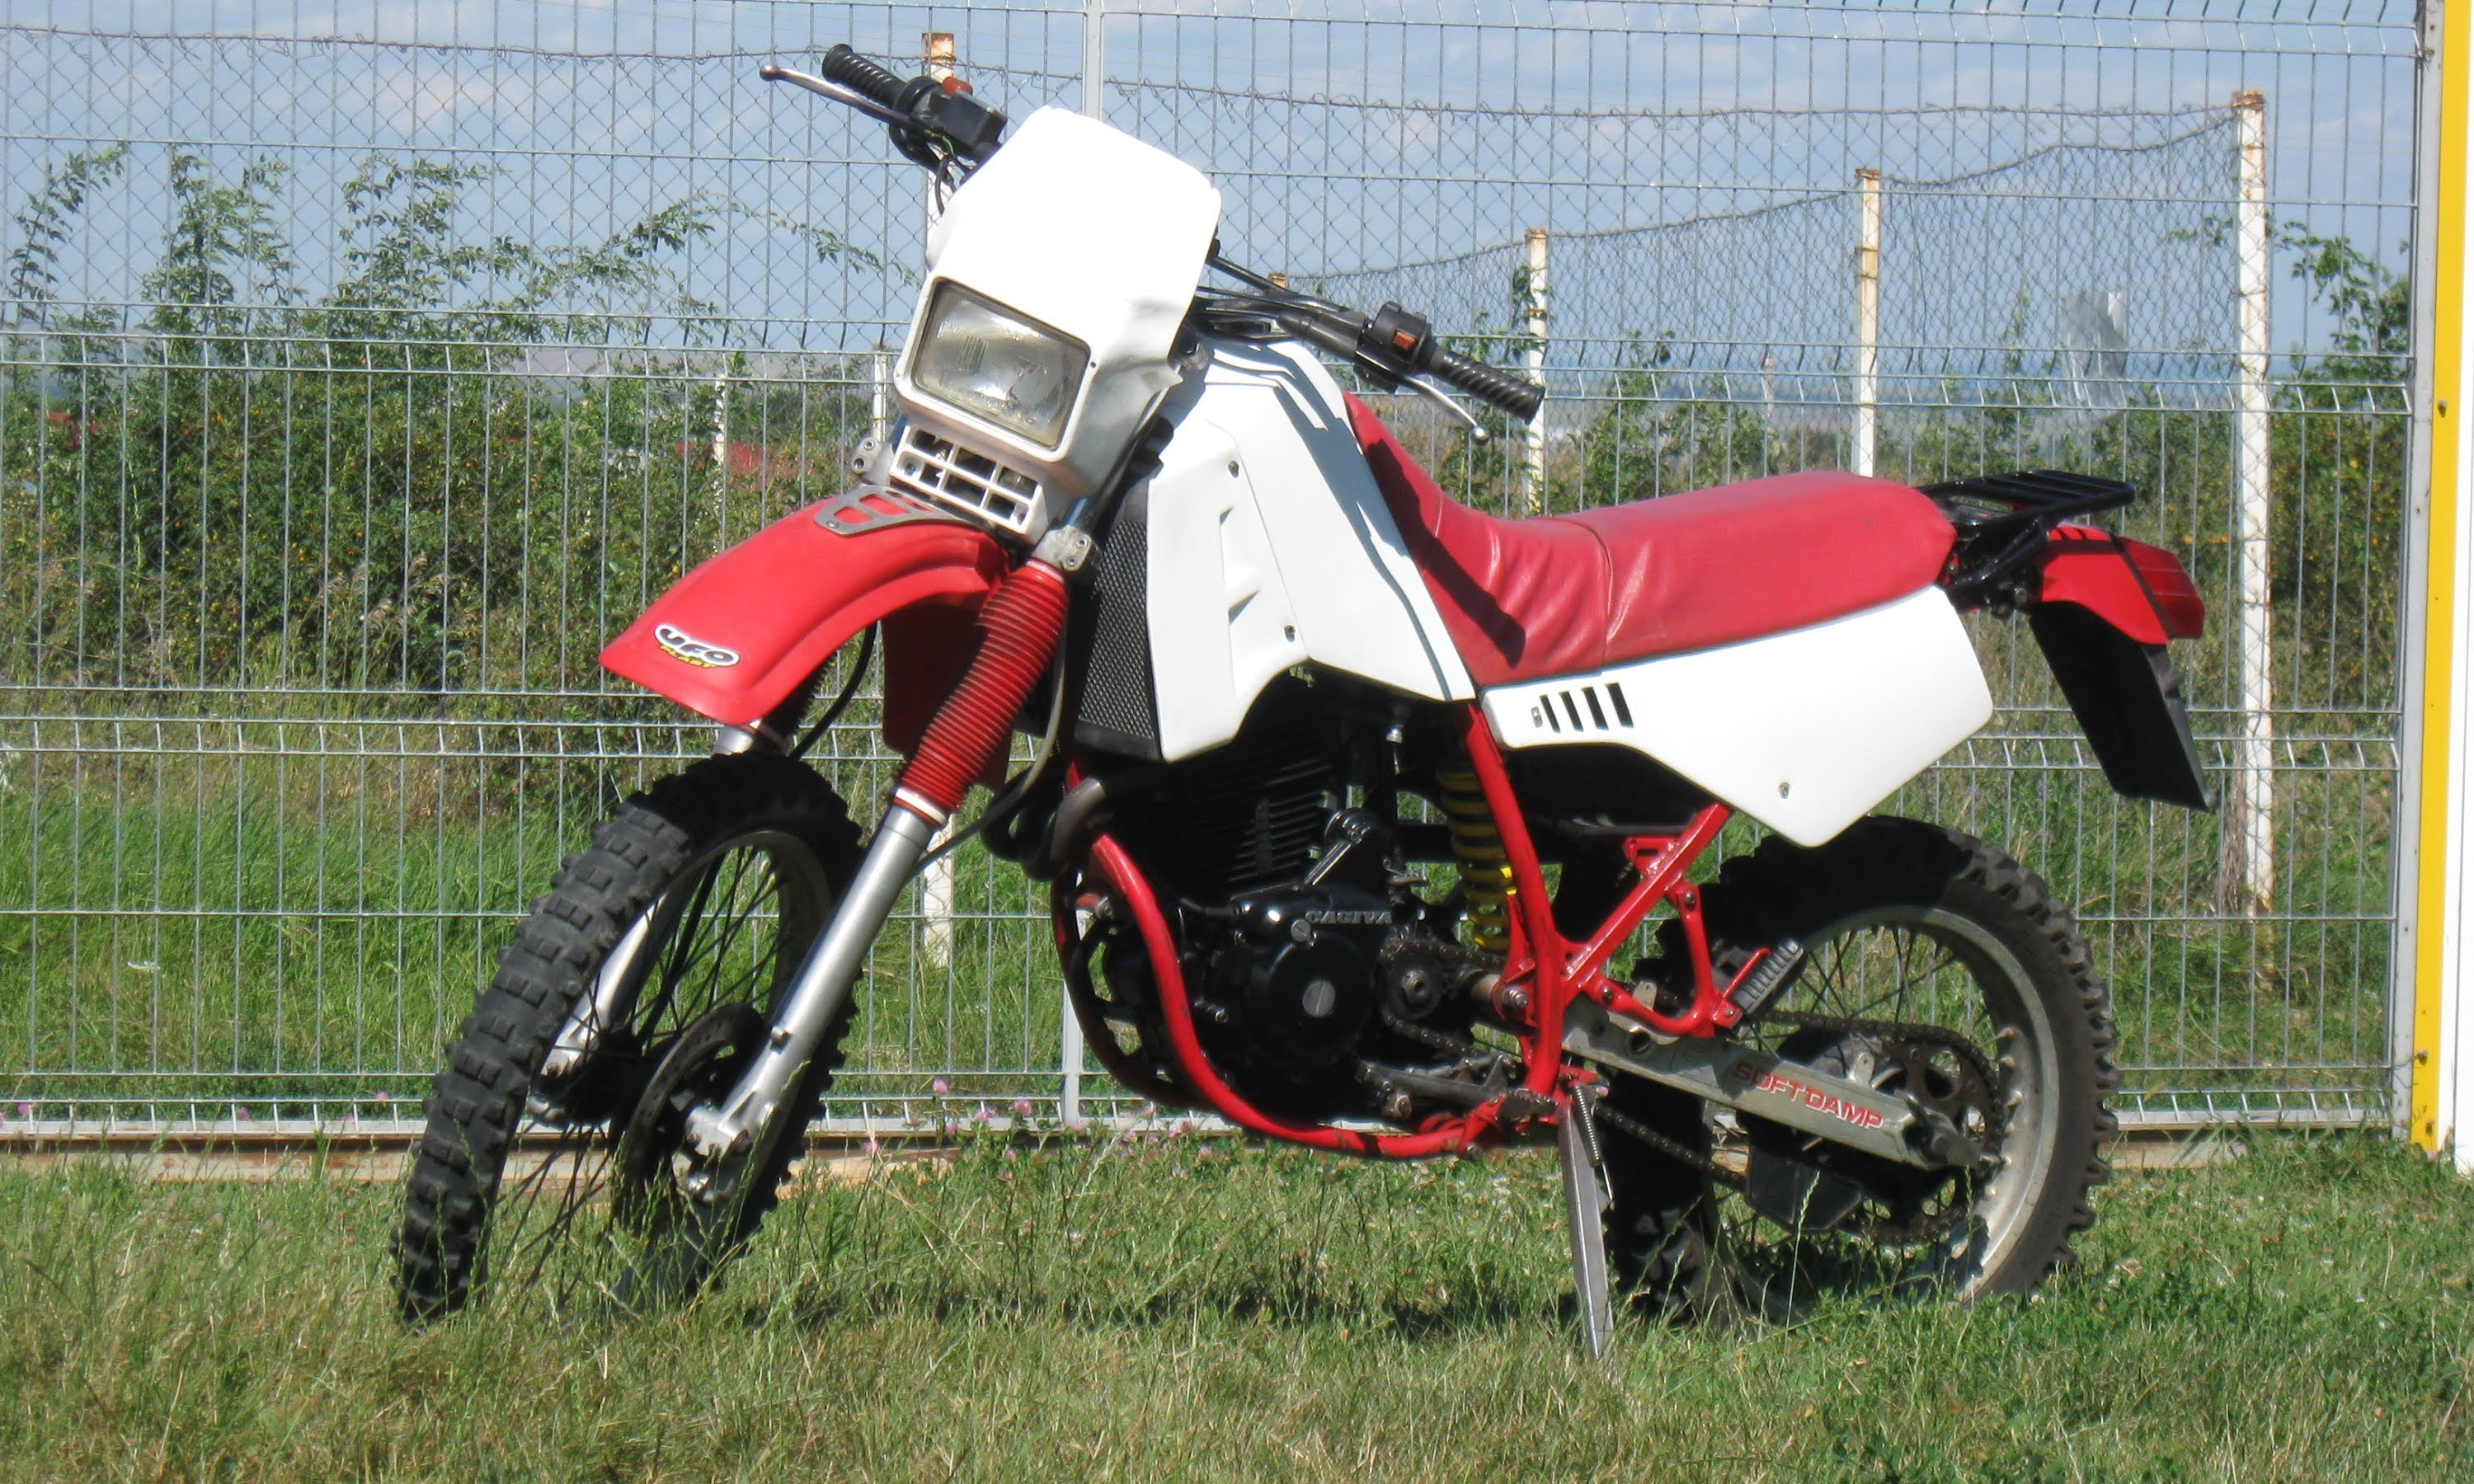 Cagiva T4 500 R Racing images #66909